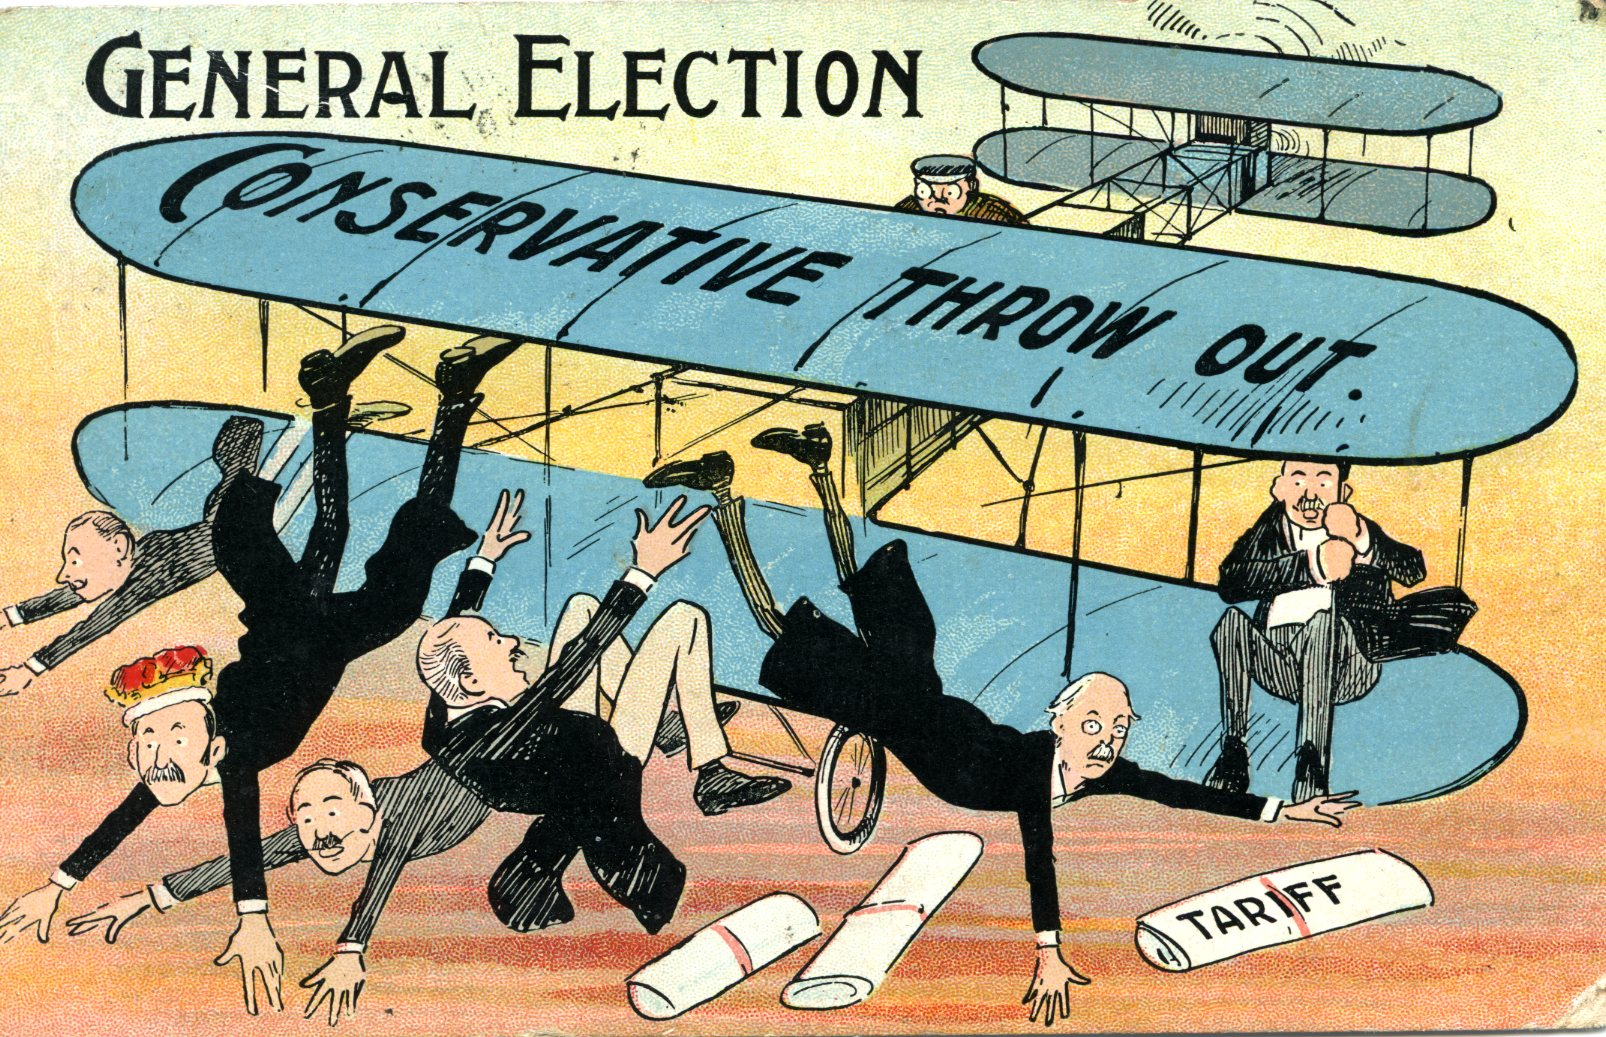 1906-Conservative-Throw-Out-Liberal-Postcard-©-Peoples-History-Museum-9e97f6a